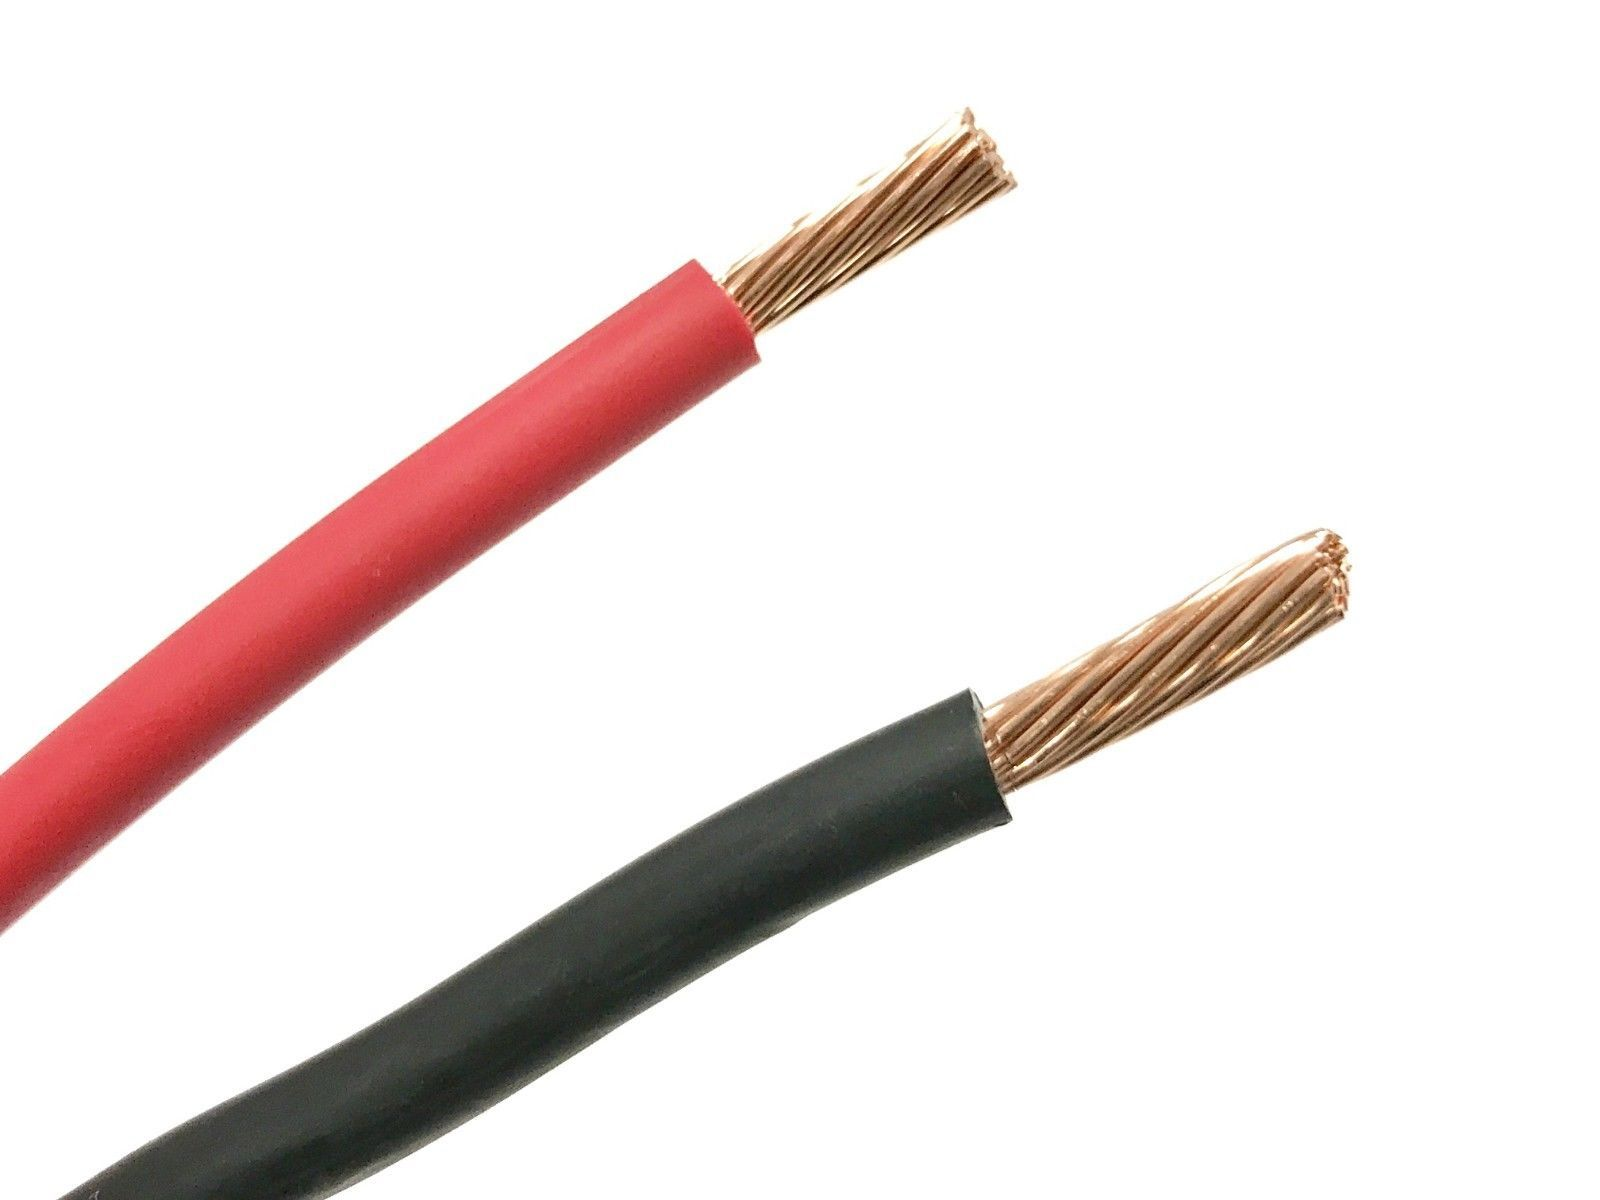 Power and Speaker Wire: Black And Red 8 Gauge Gxl Automotive High ...